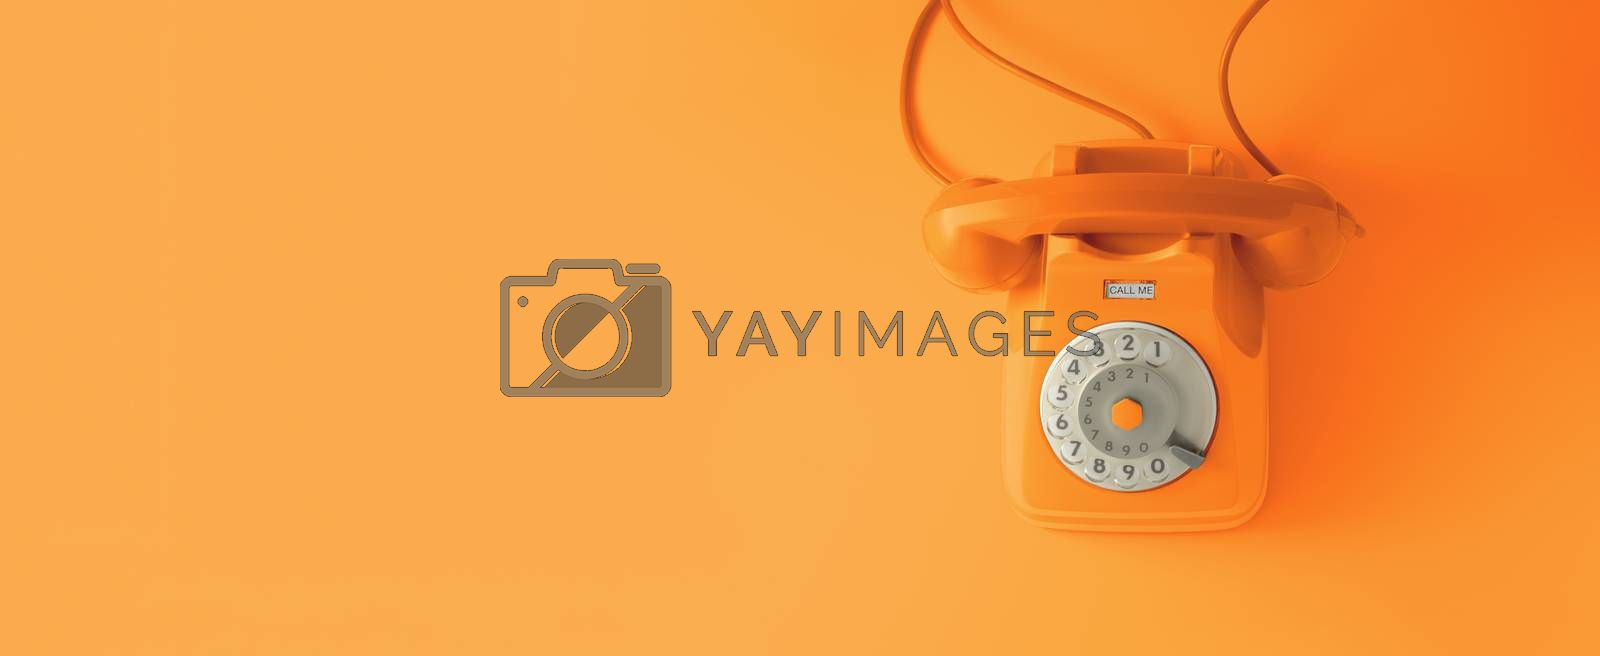 Royalty free image of An orange vintage dial telephone. by maramade